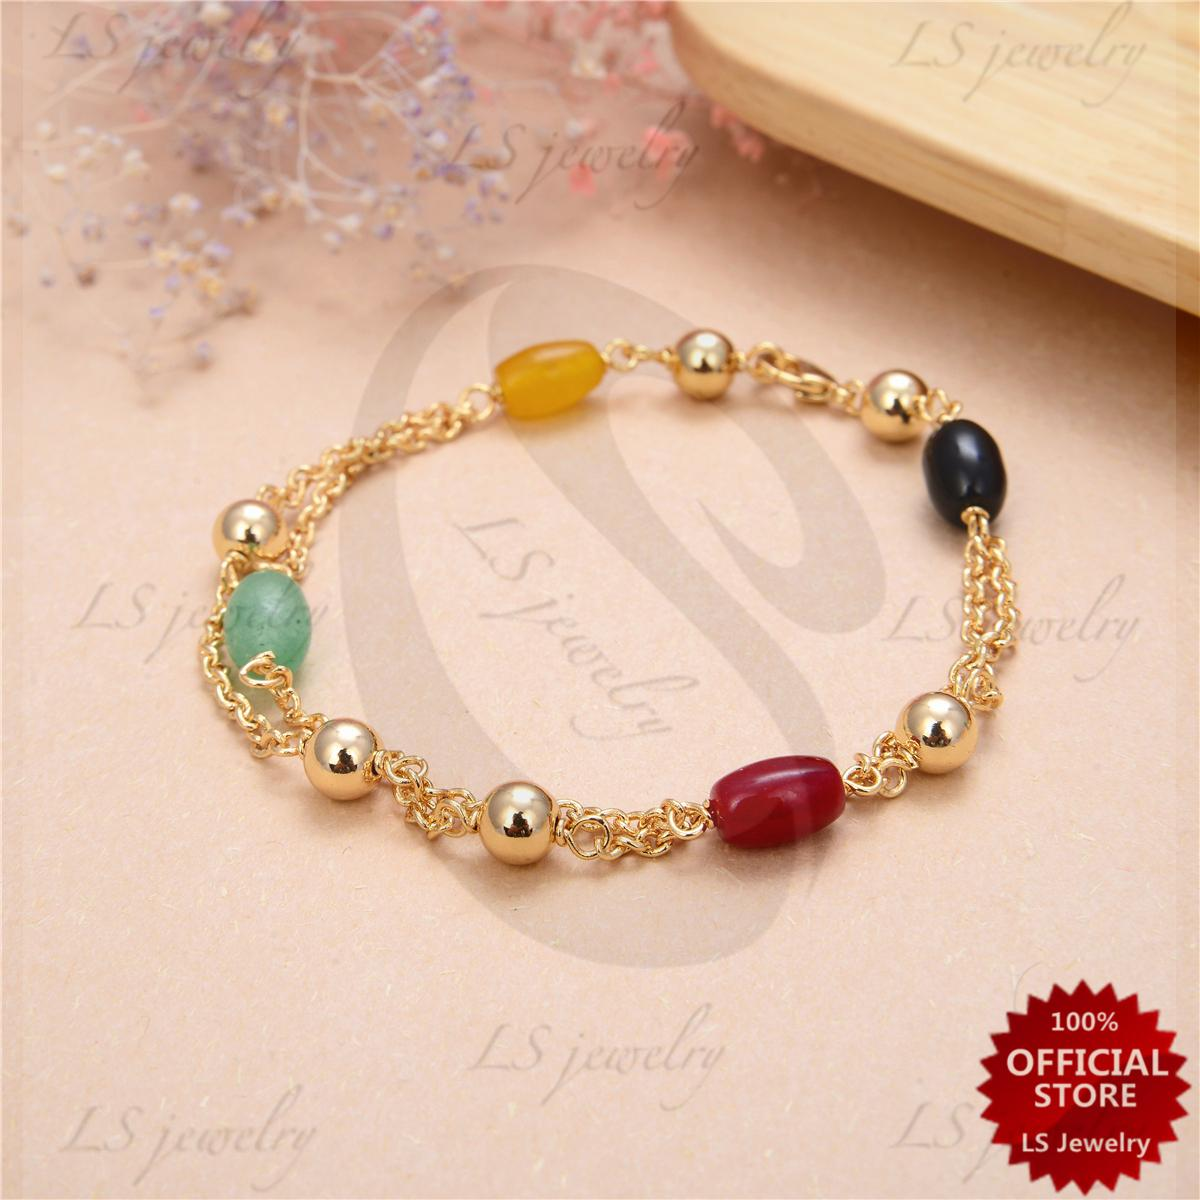 253e2c95a0 LSjewelry Lucky charm jade and Coral Stainless gold Plated bracelet B